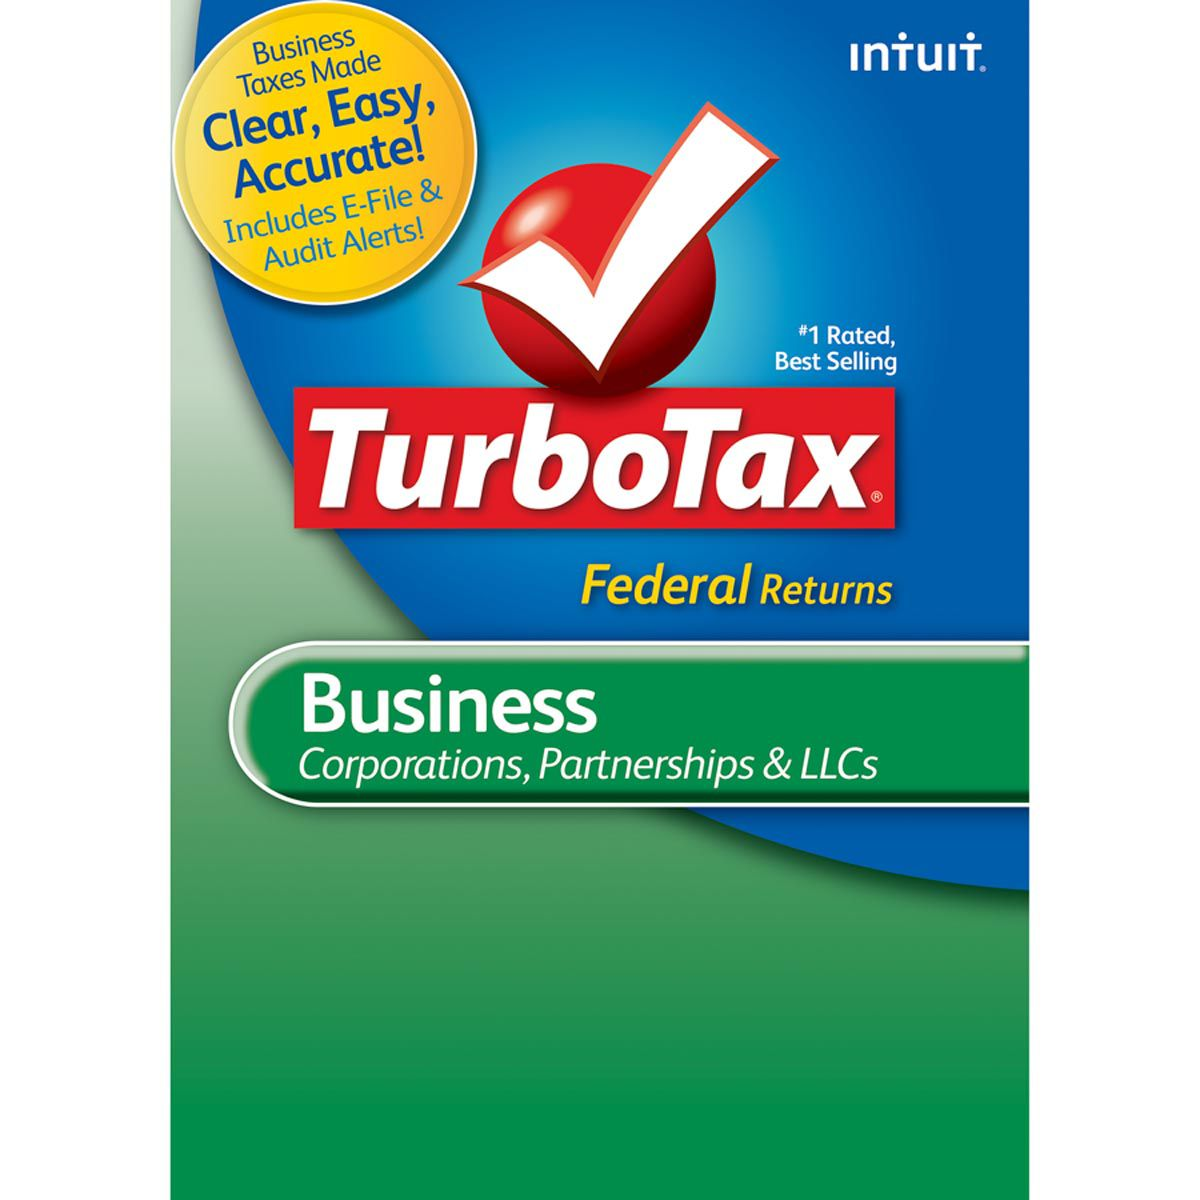 TurboTax 2012 Software Versions, Features And Prices